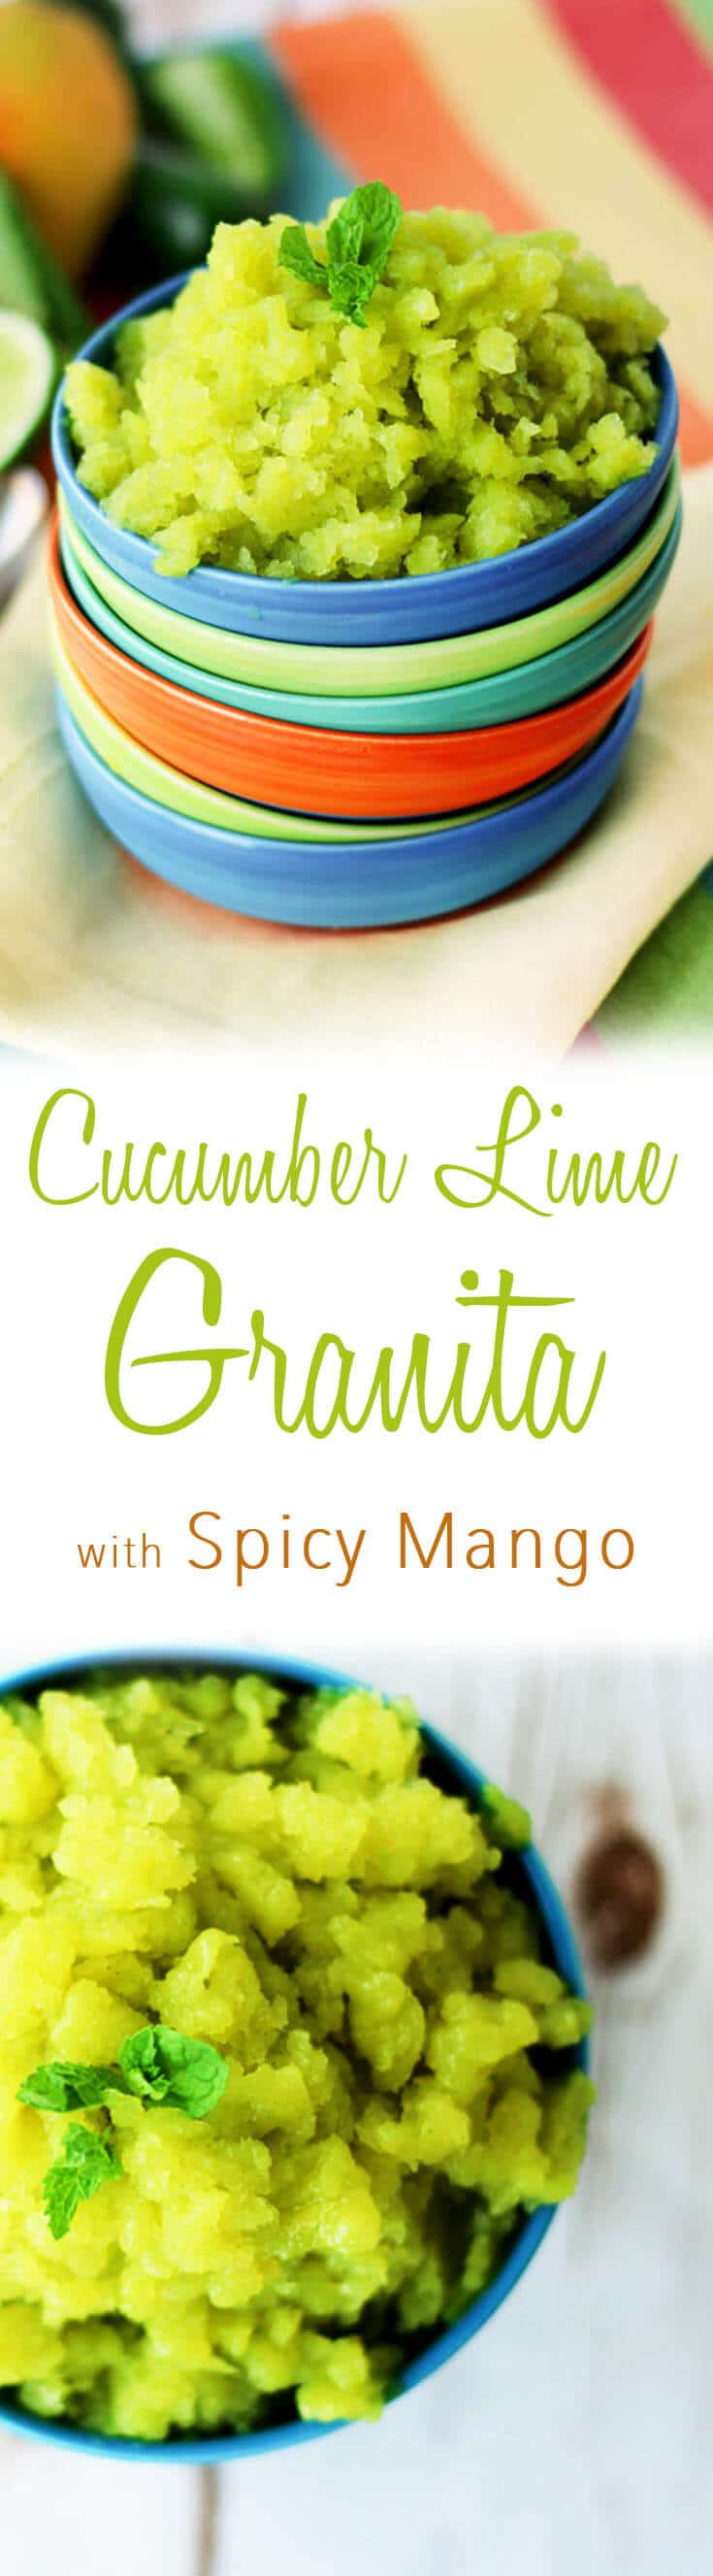 This cucumber lime granita with spicy mango kick is totally vegan, gluten free and a total refresher on a hot Summer day.